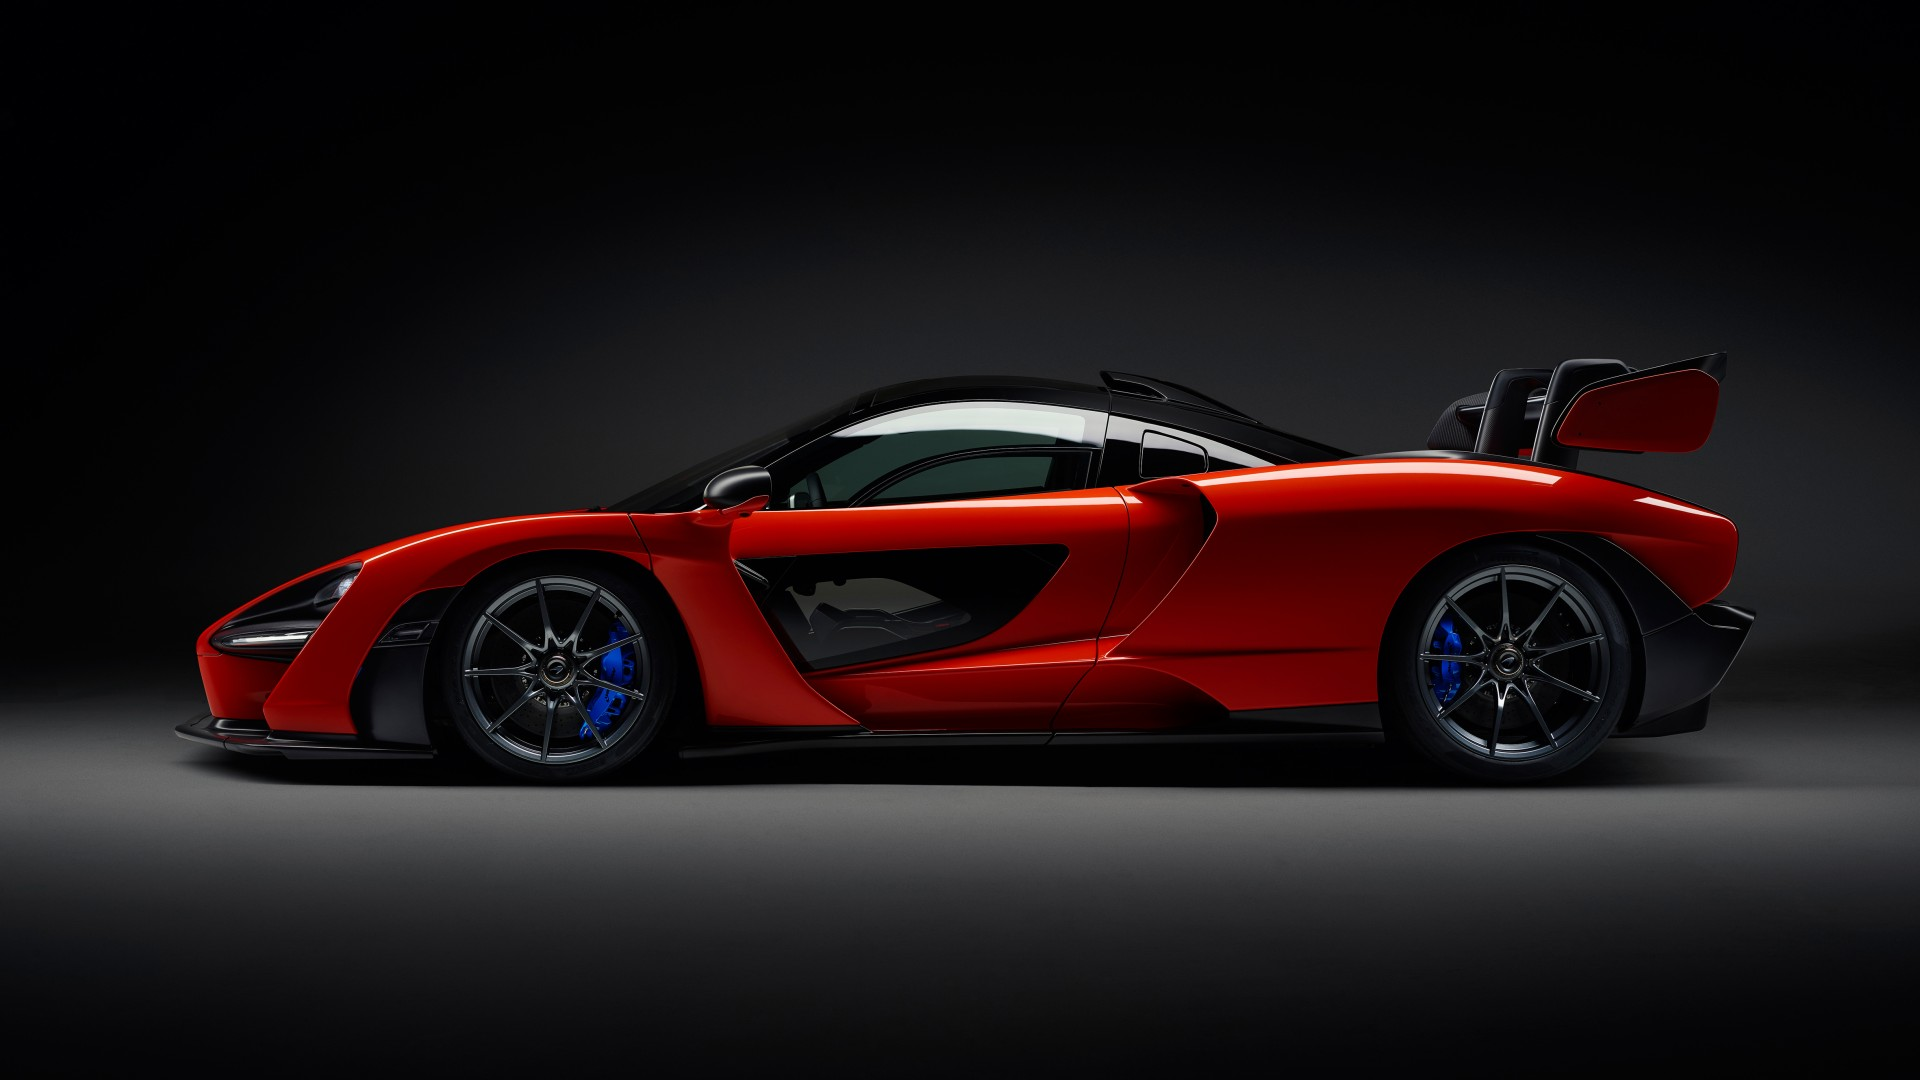 mclaren senna  wallpaper hd car wallpapers id